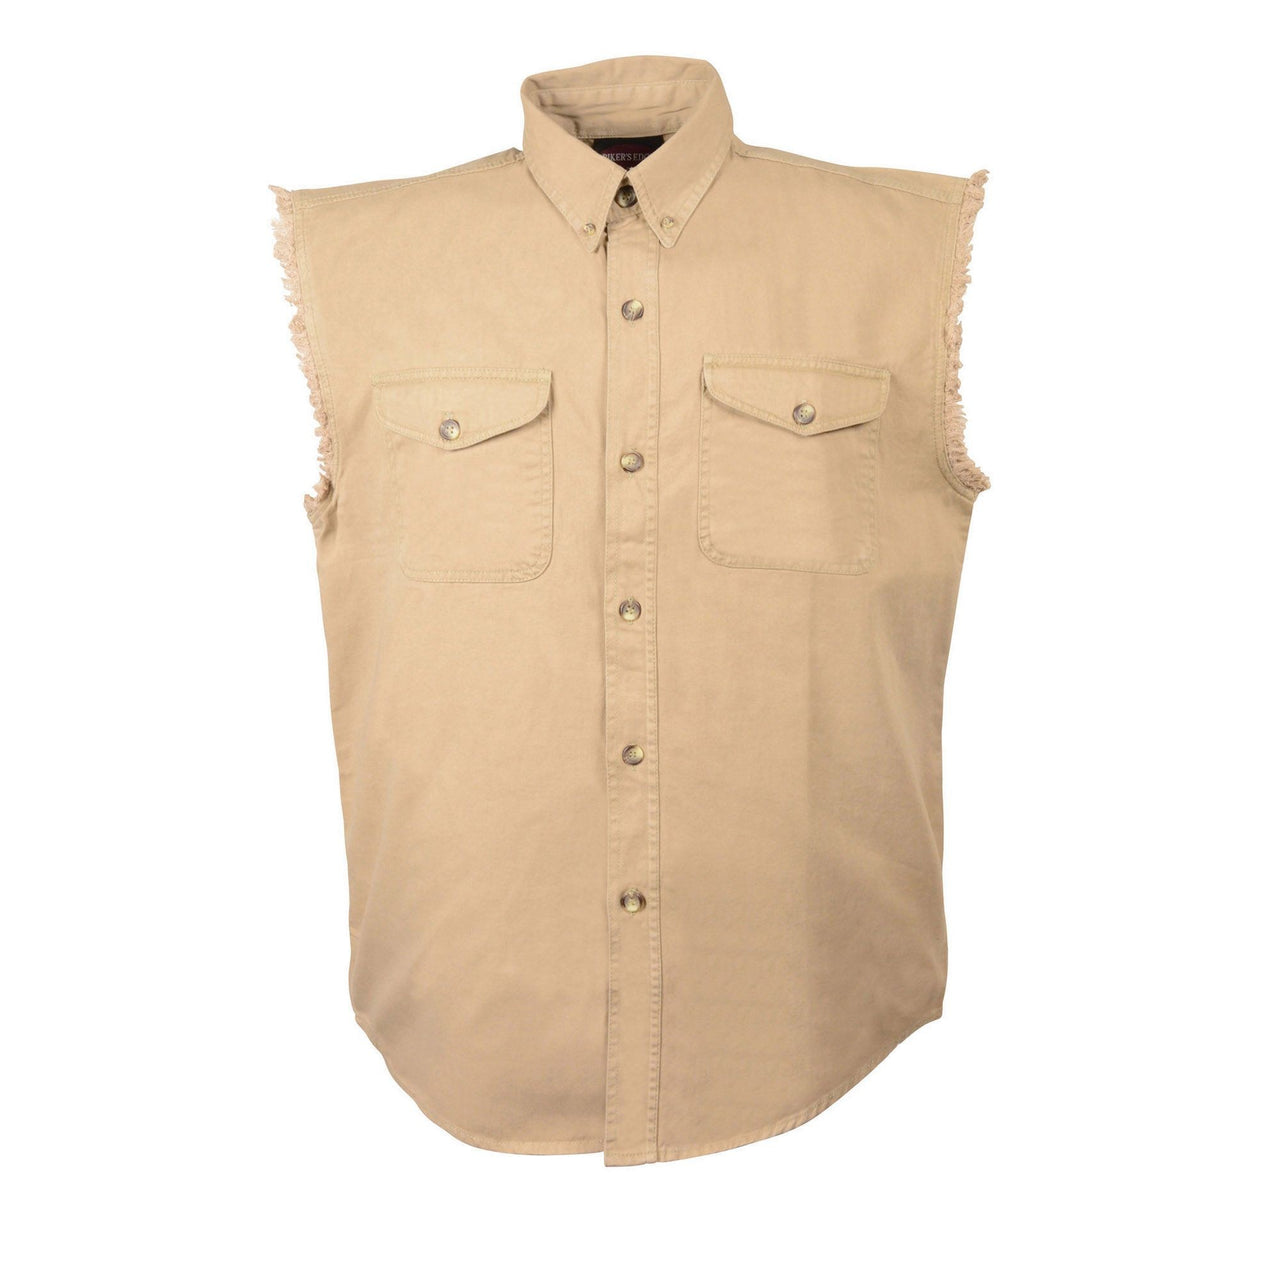 Men's Beige Lightweight Sleeveless Denim Shirt - HighwayLeather